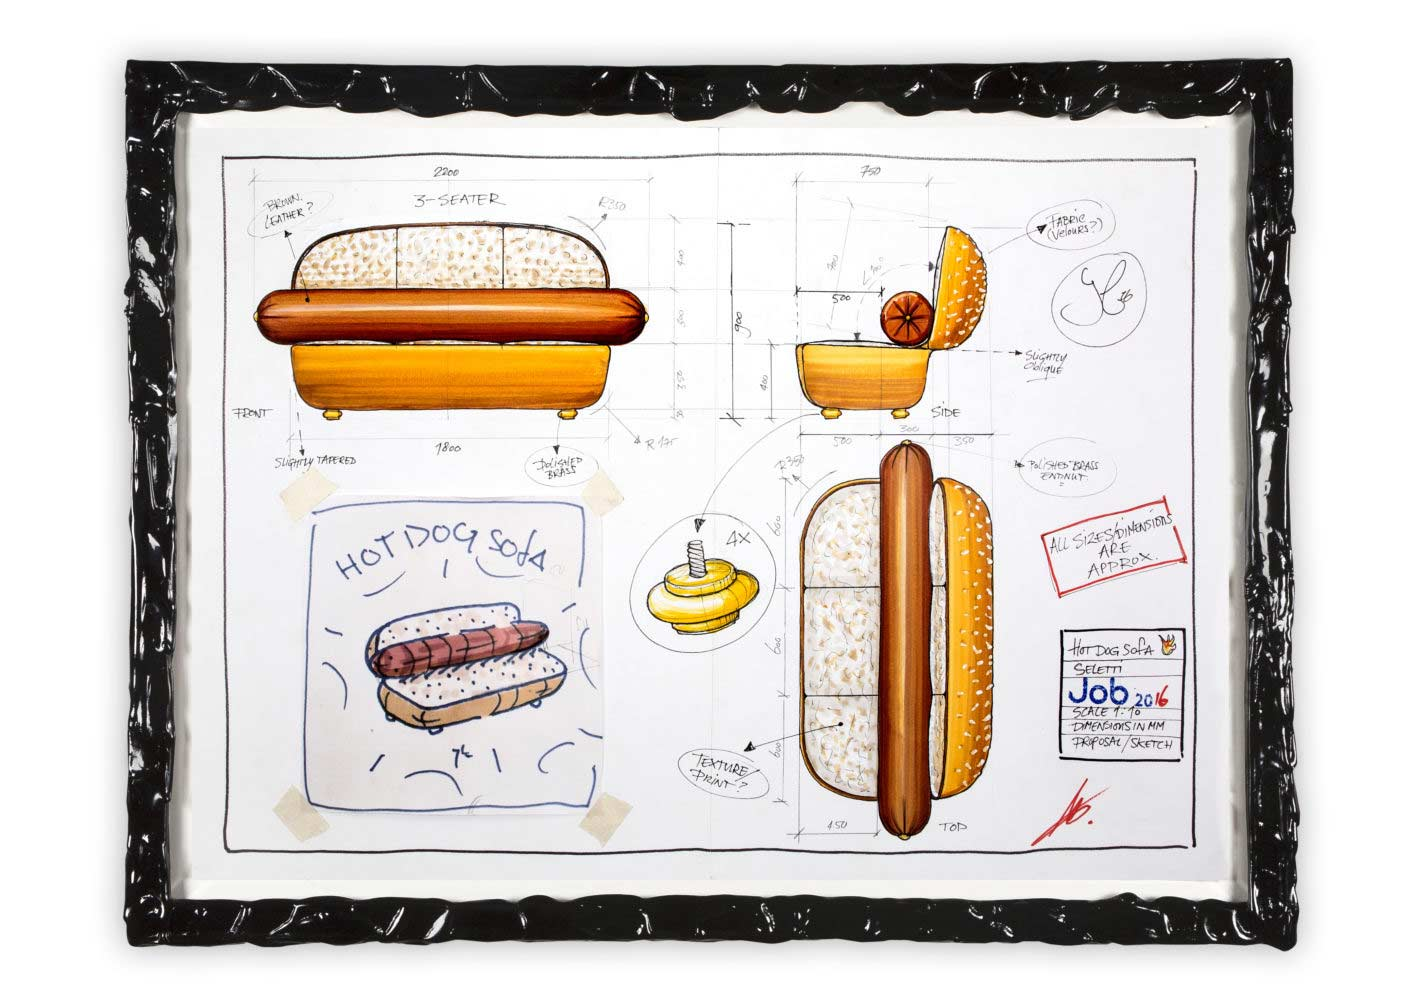 Hot Dog-Sofa und Hamburger-Sessel hot-dog-sofa-hamburger-sessel_05